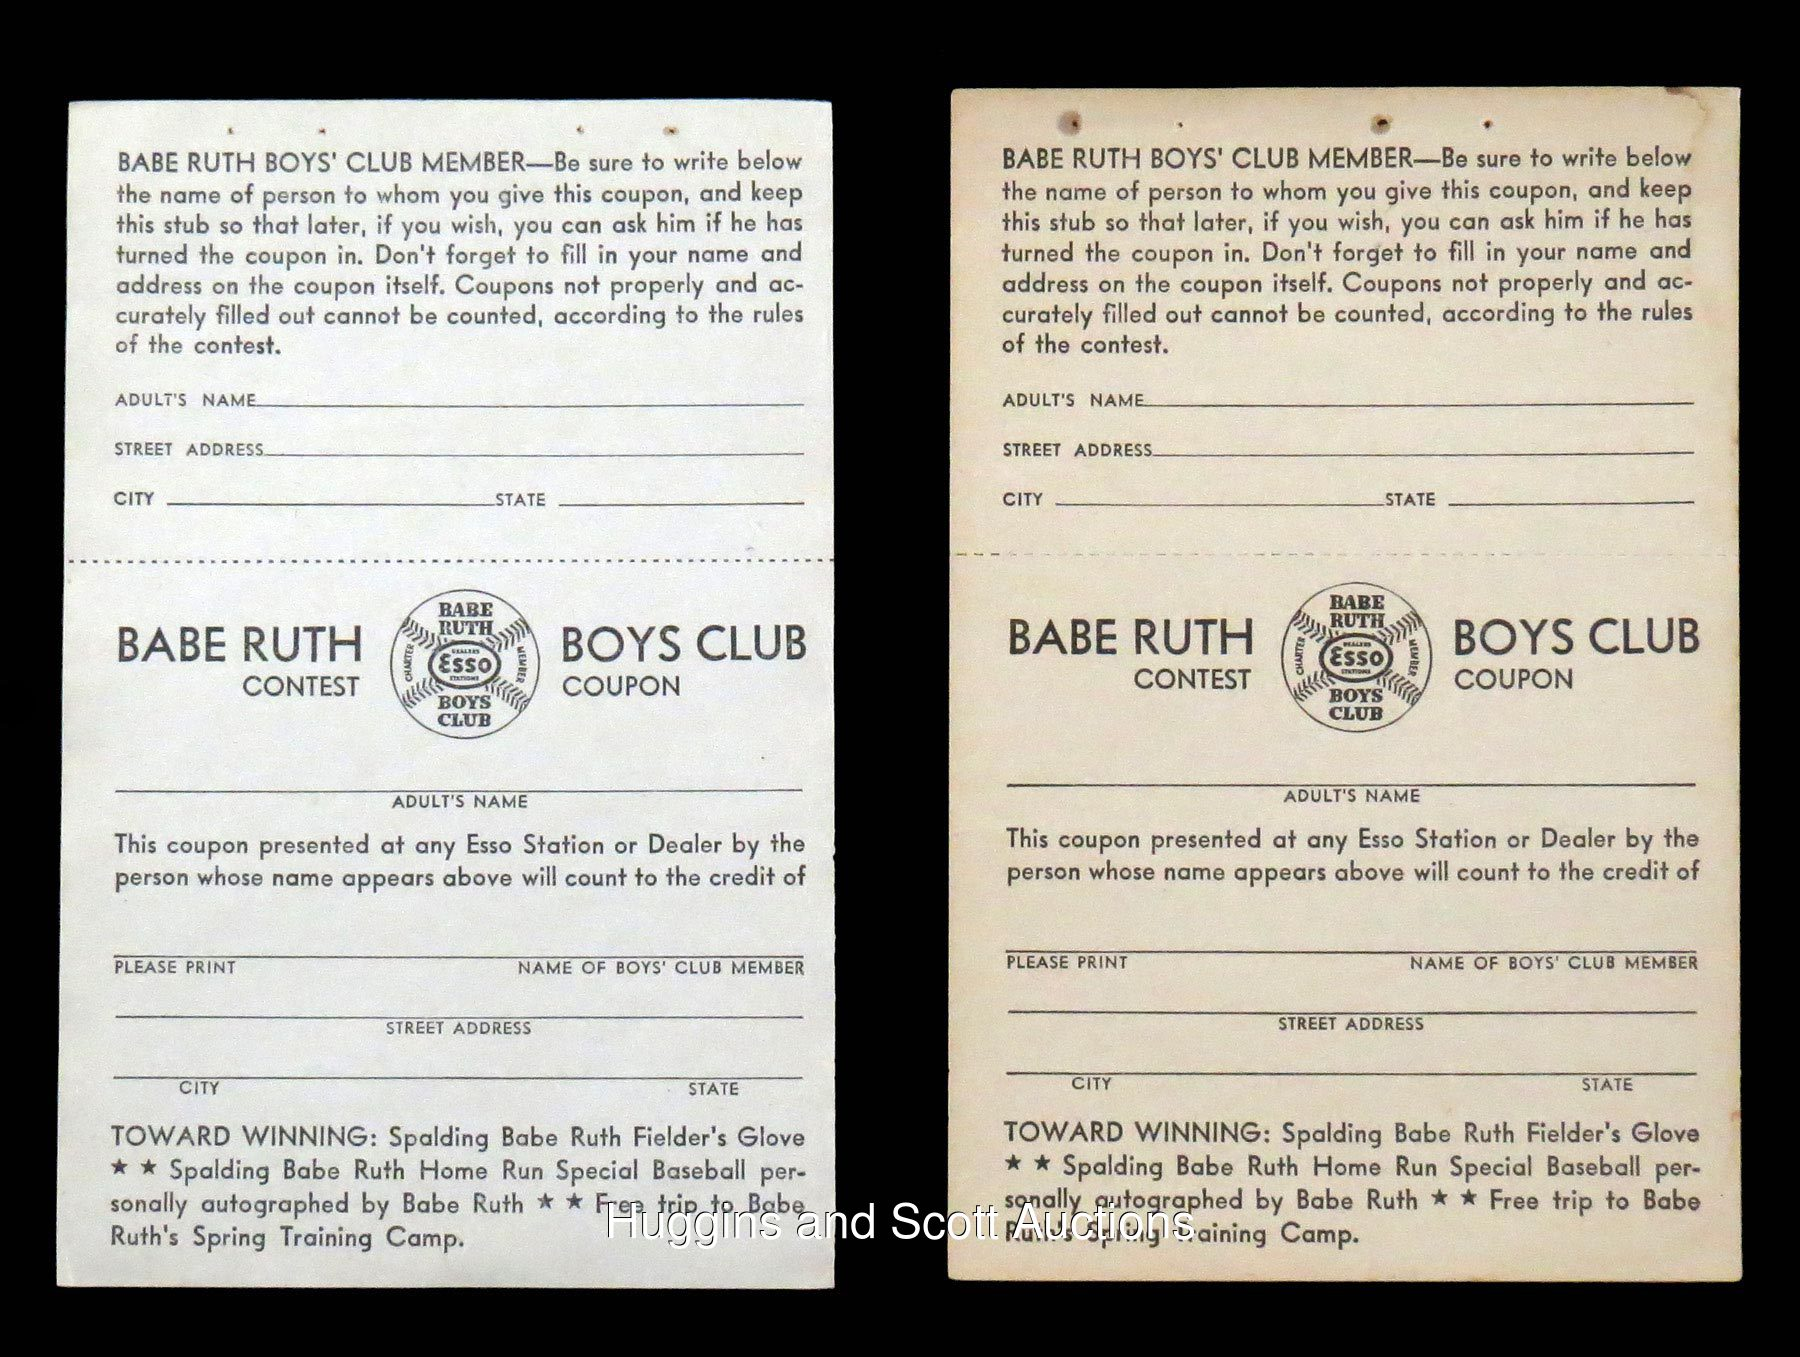 babe ruth sinclair babe ruth baseball contest ball pictures click on photo to enlarge